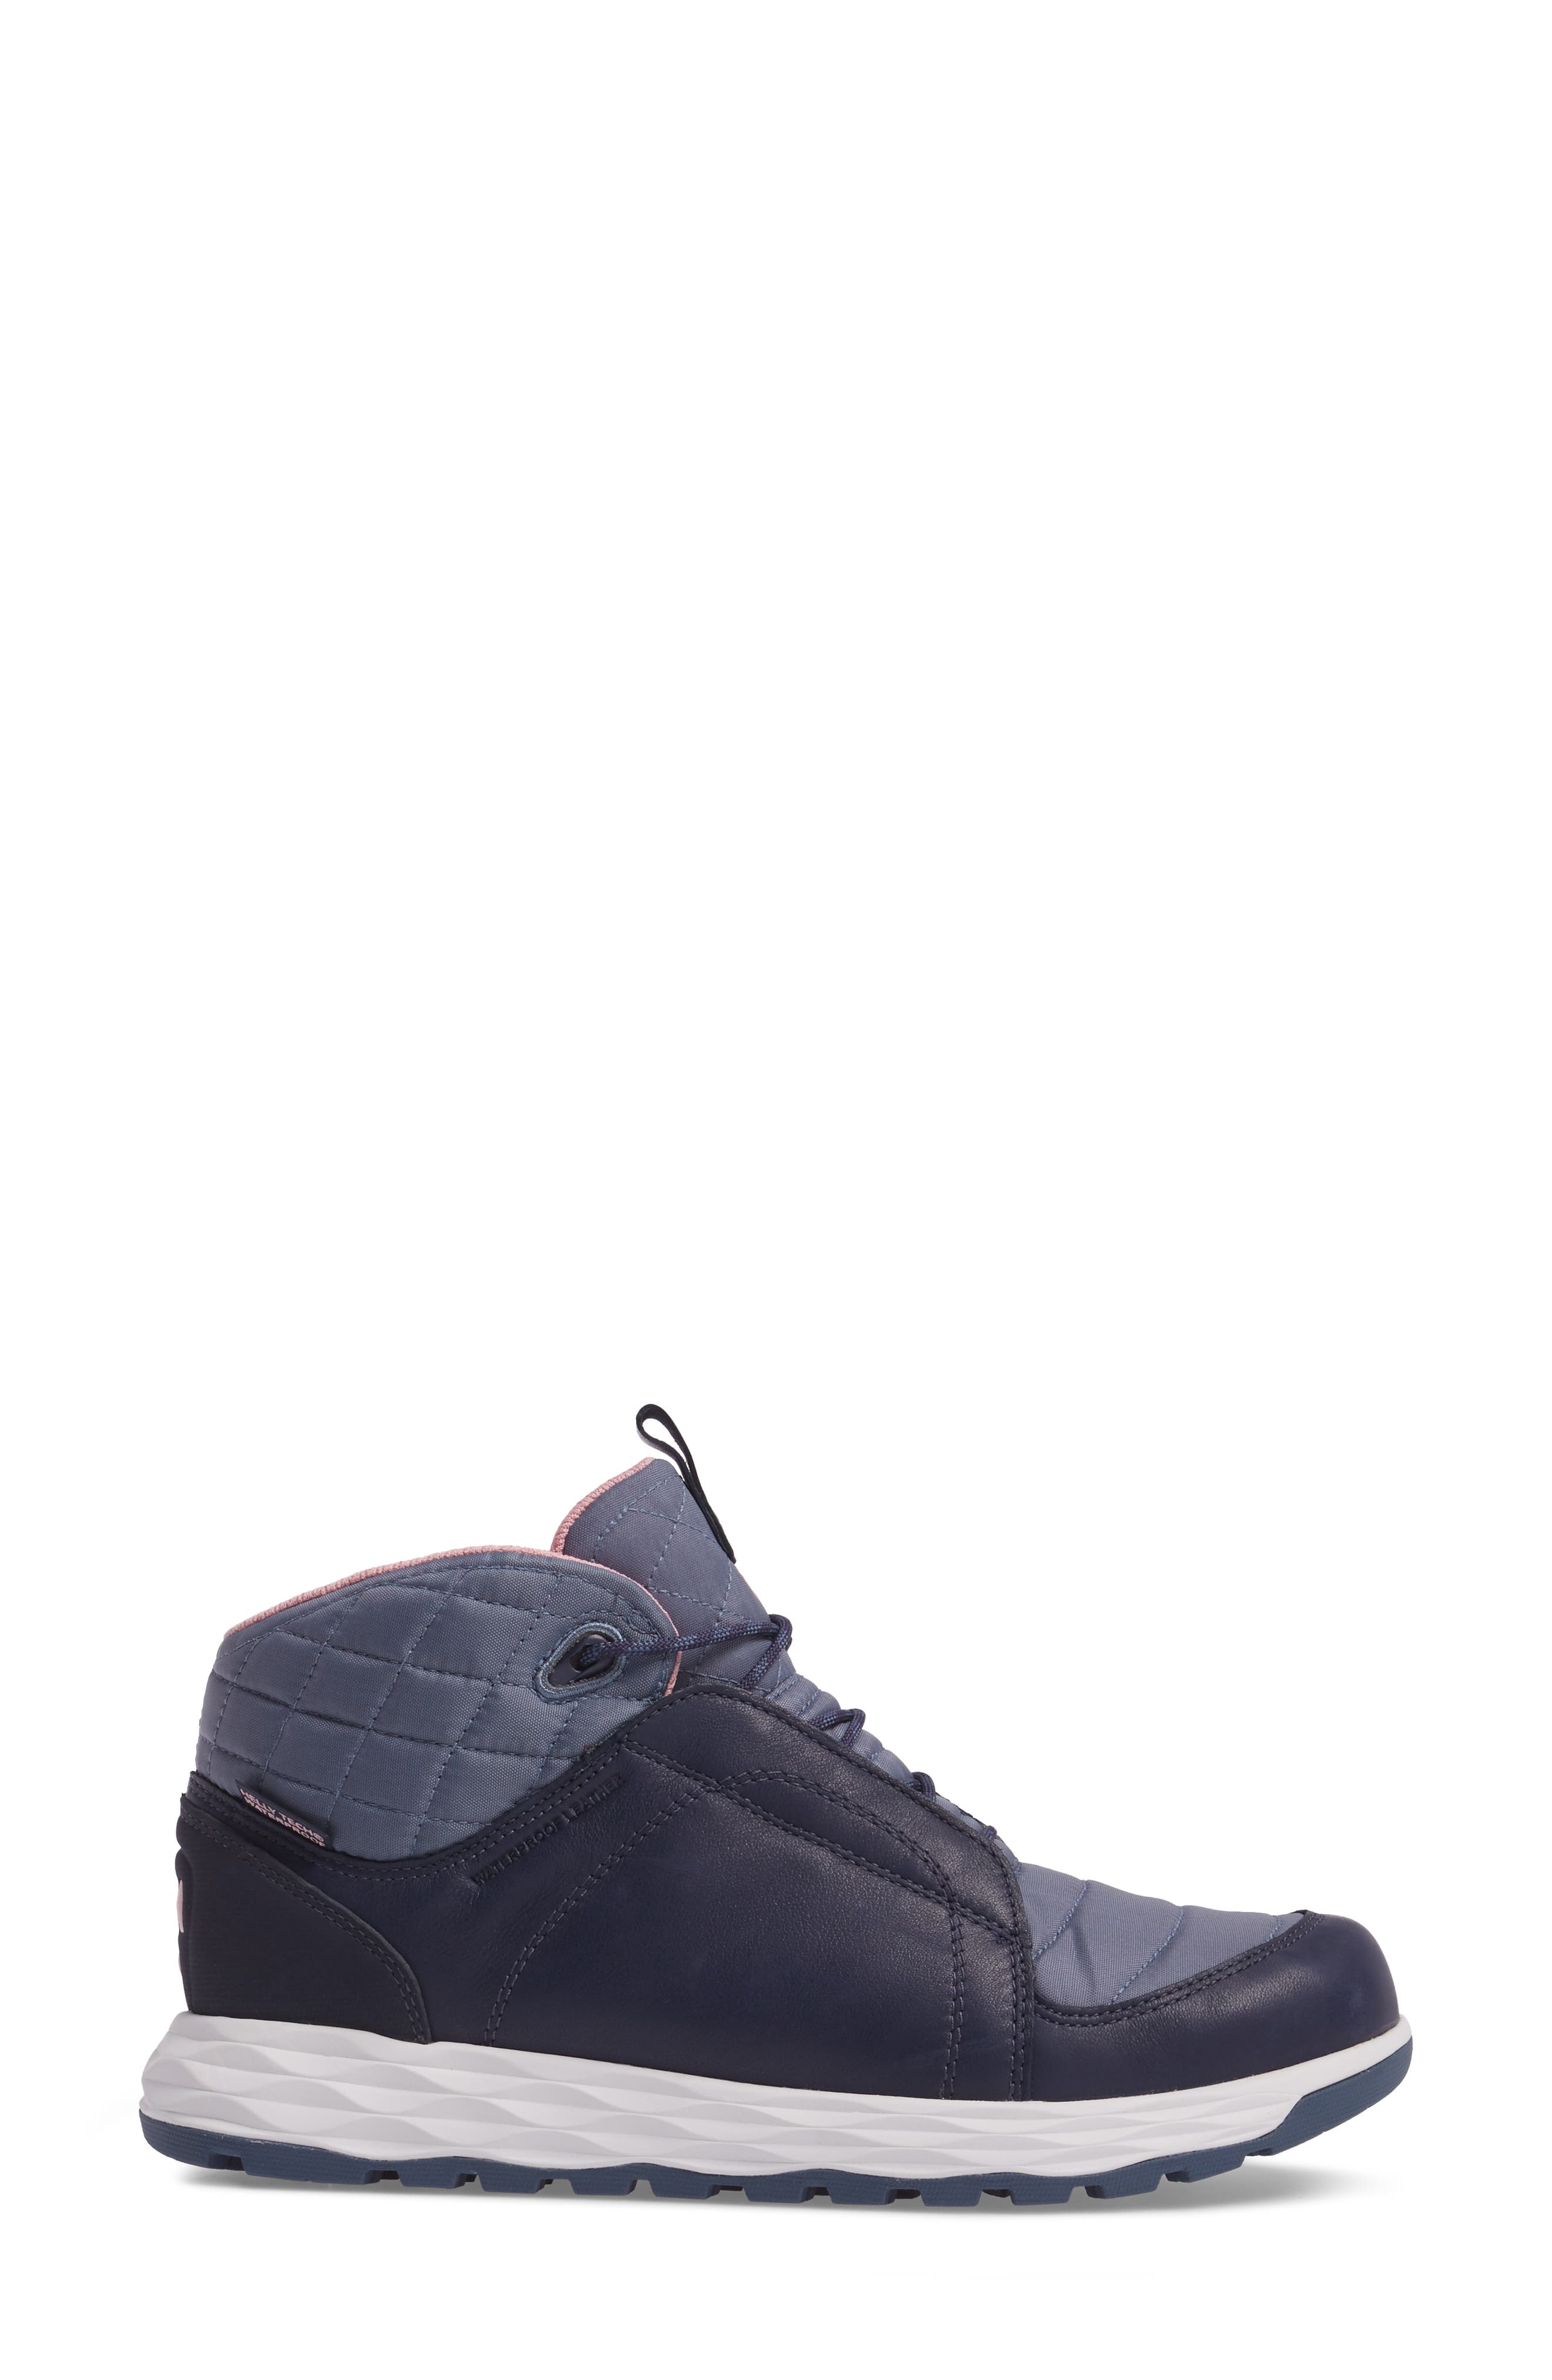 Alternate Image 3  - Helly Hansen Ten Below Waterproof High Top Sneaker (Women)